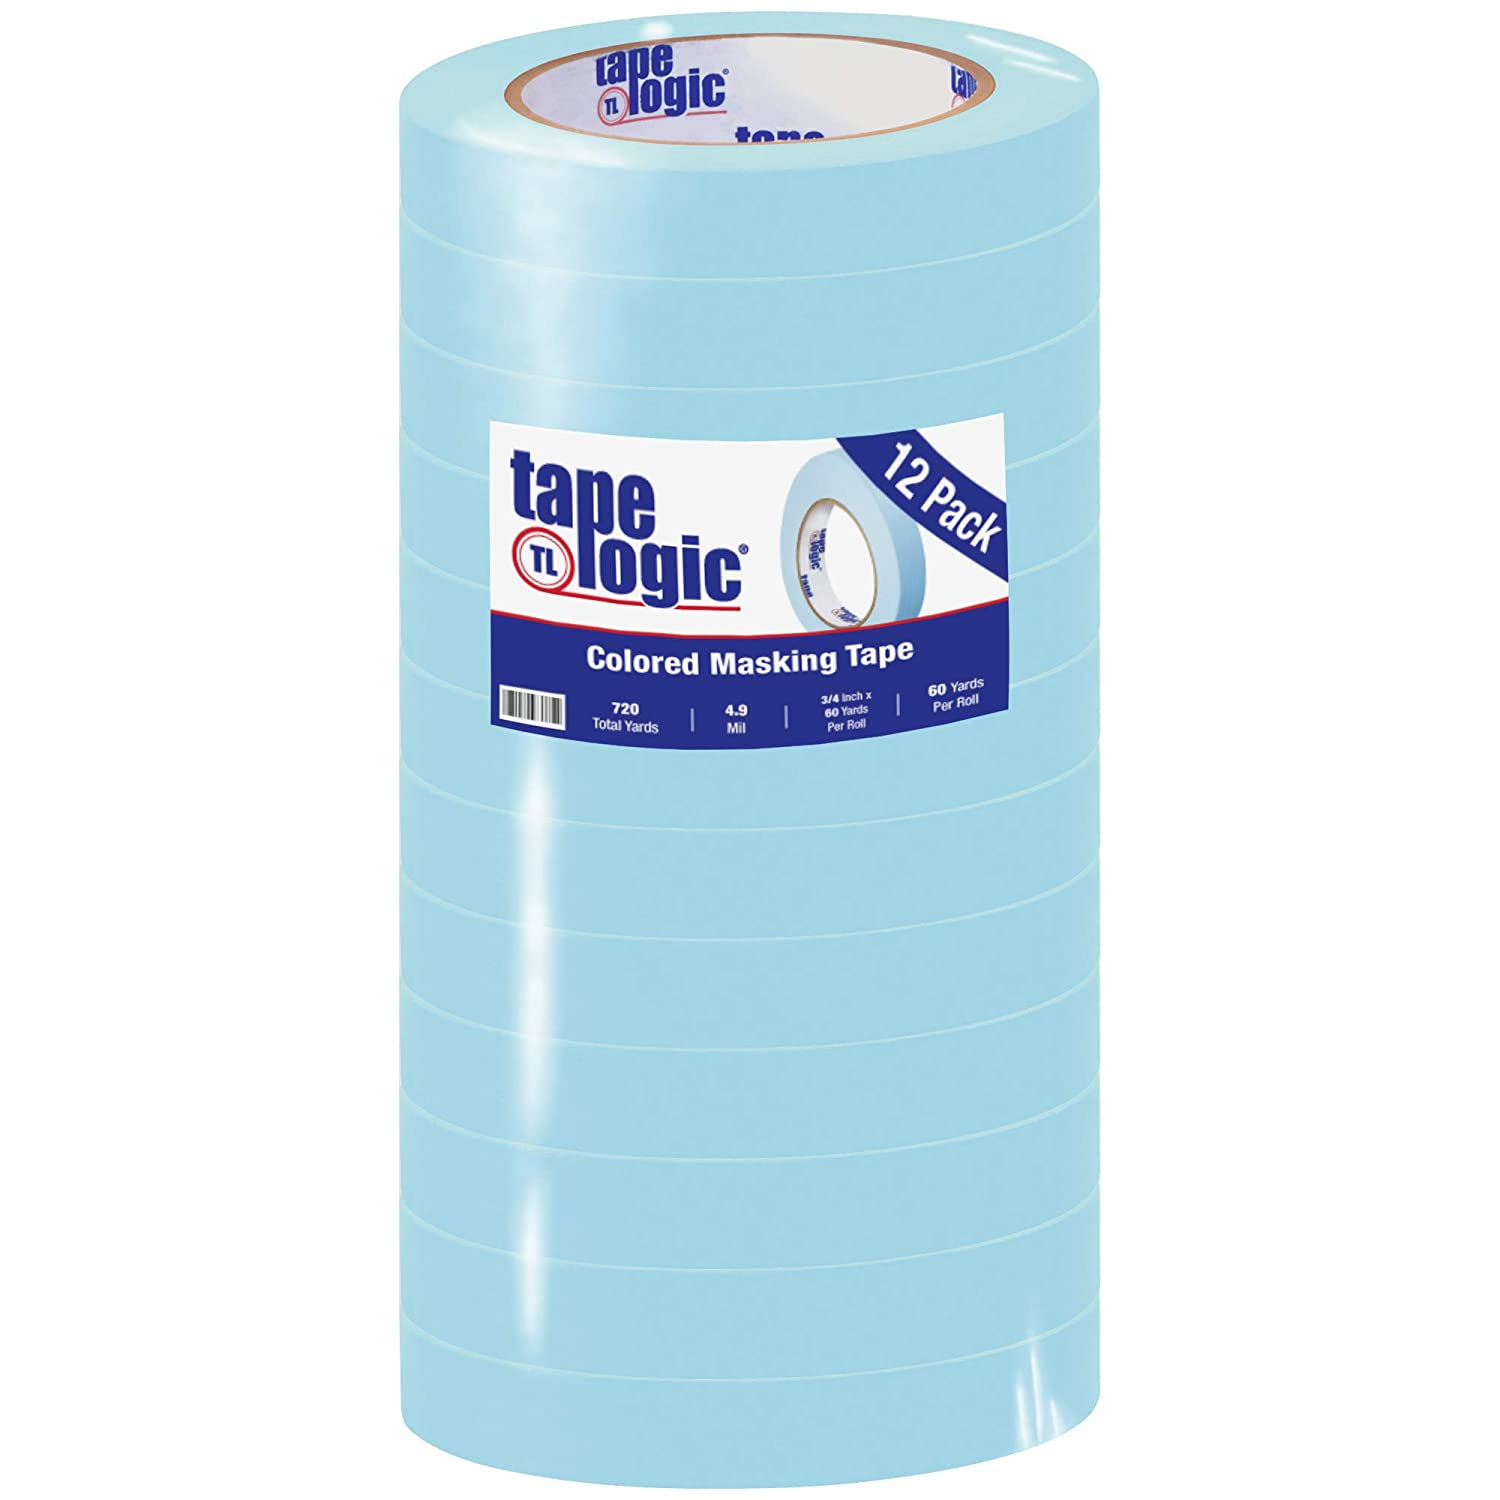 Aviditi Tape Logic 3/4 Inch x 60 Yards, General Purpose Colored Masking Tape, Light Blue (Pack of 12) - Great for Home, Office, Arts, Crafts, DIY, Labeling and Coding